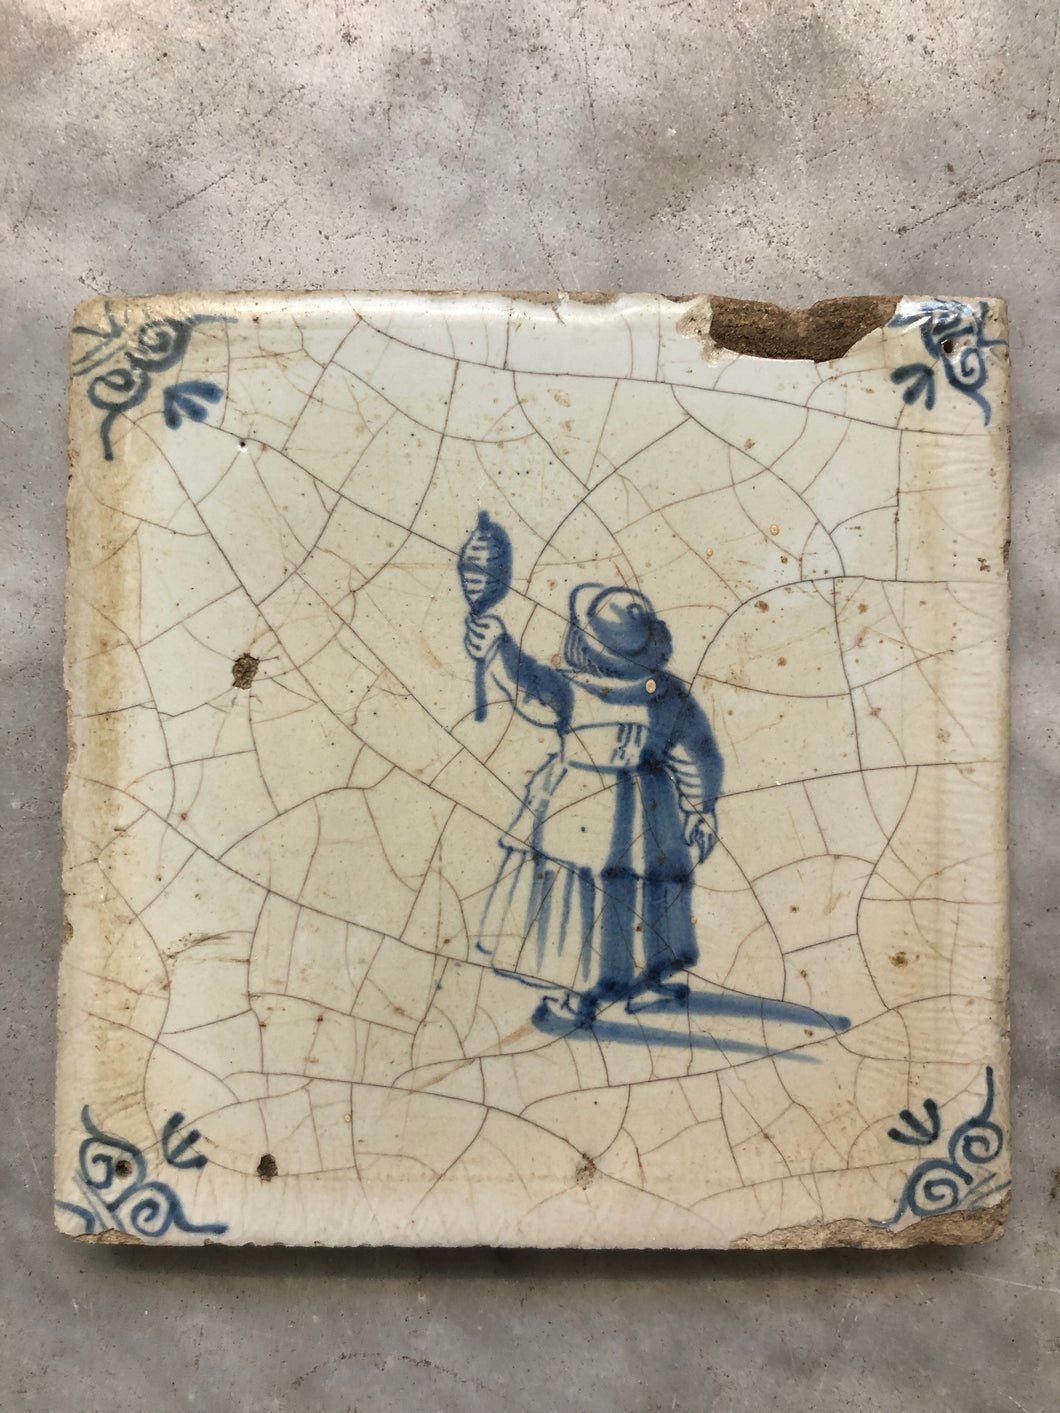 17th century Delft handpainted dutch tile with child